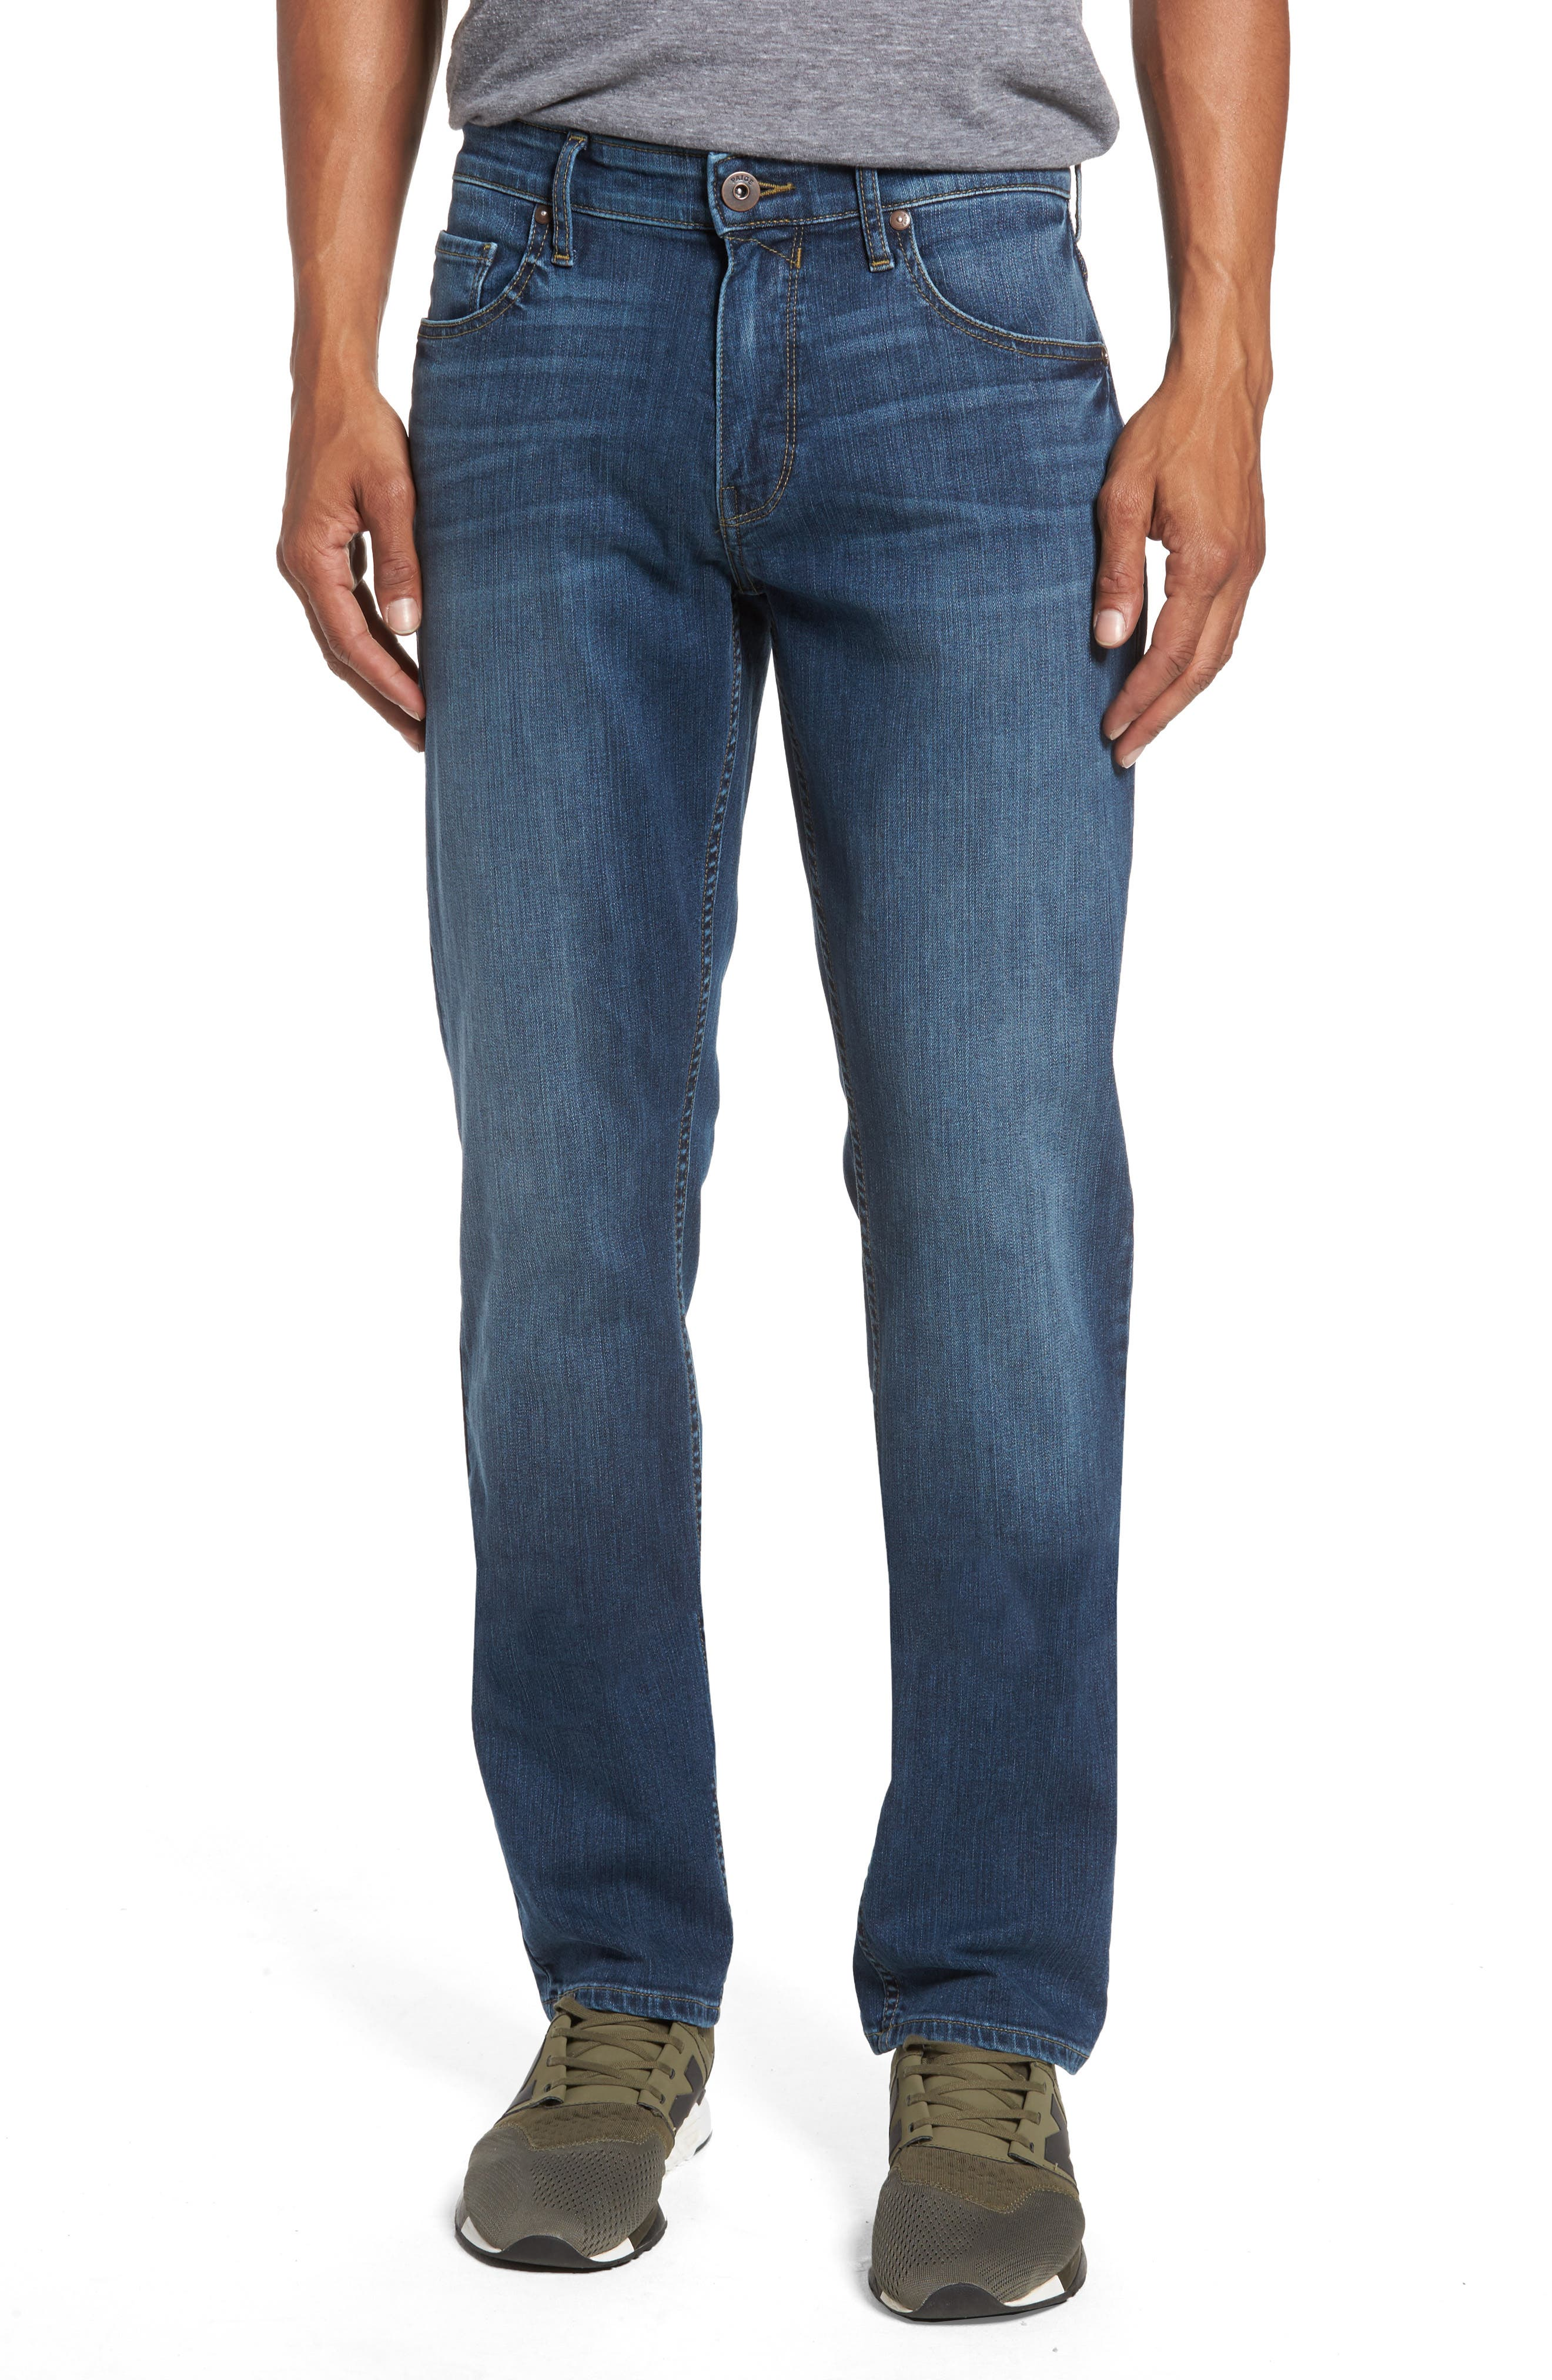 Legacy - Federal Slim Straight Fit Jeans,                         Main,                         color, Indie